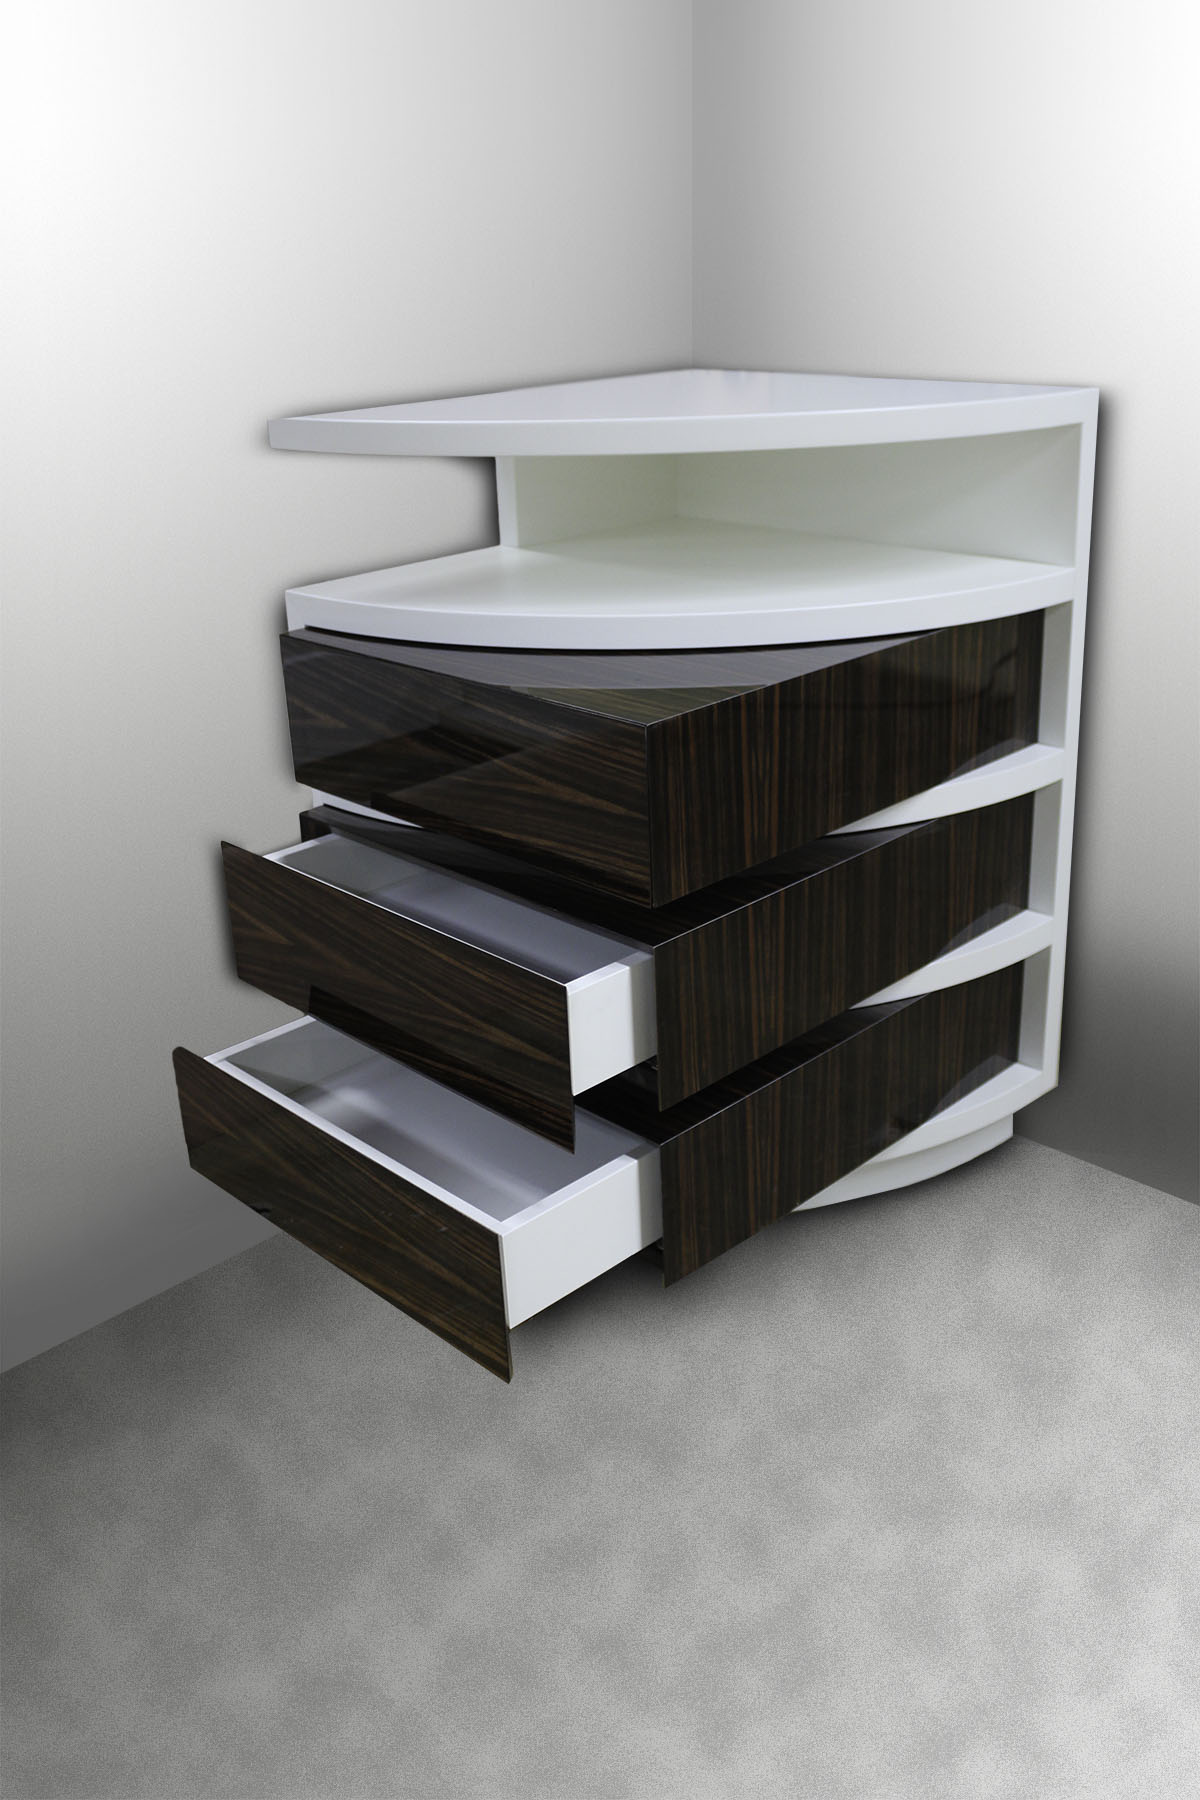 fed nachtschrank tischlerei f r exklusiven m belbau und individuelle ma anfertigungen berlin. Black Bedroom Furniture Sets. Home Design Ideas